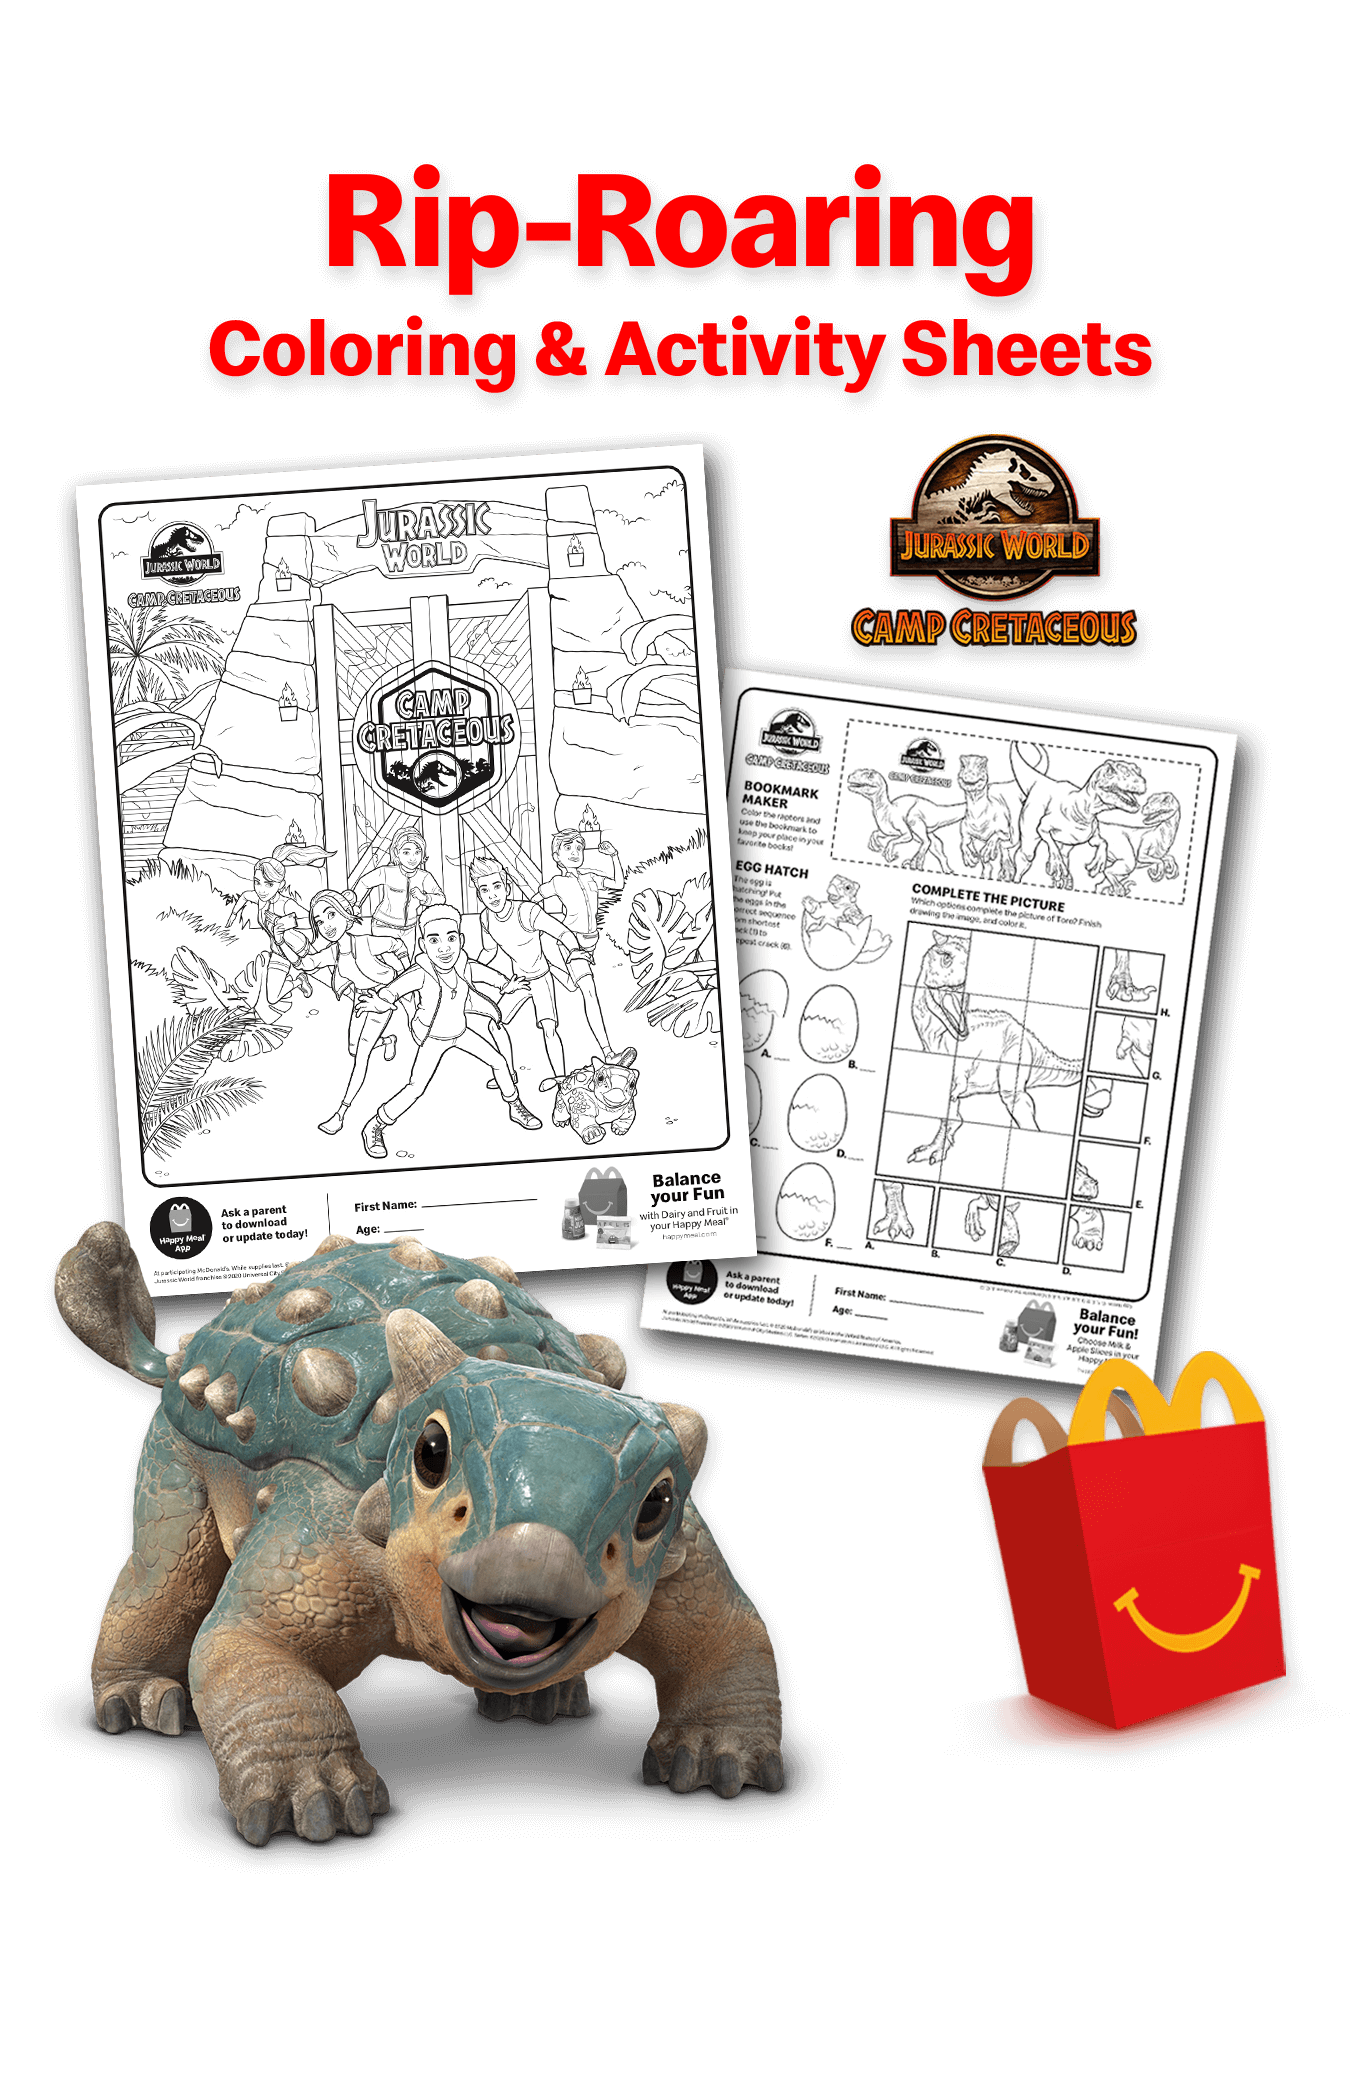 Jurassic World Camp Cretaceous Exciting Coloring And Activity Sheets Animal Figurine Toys Jurassic World African Jungle Animals